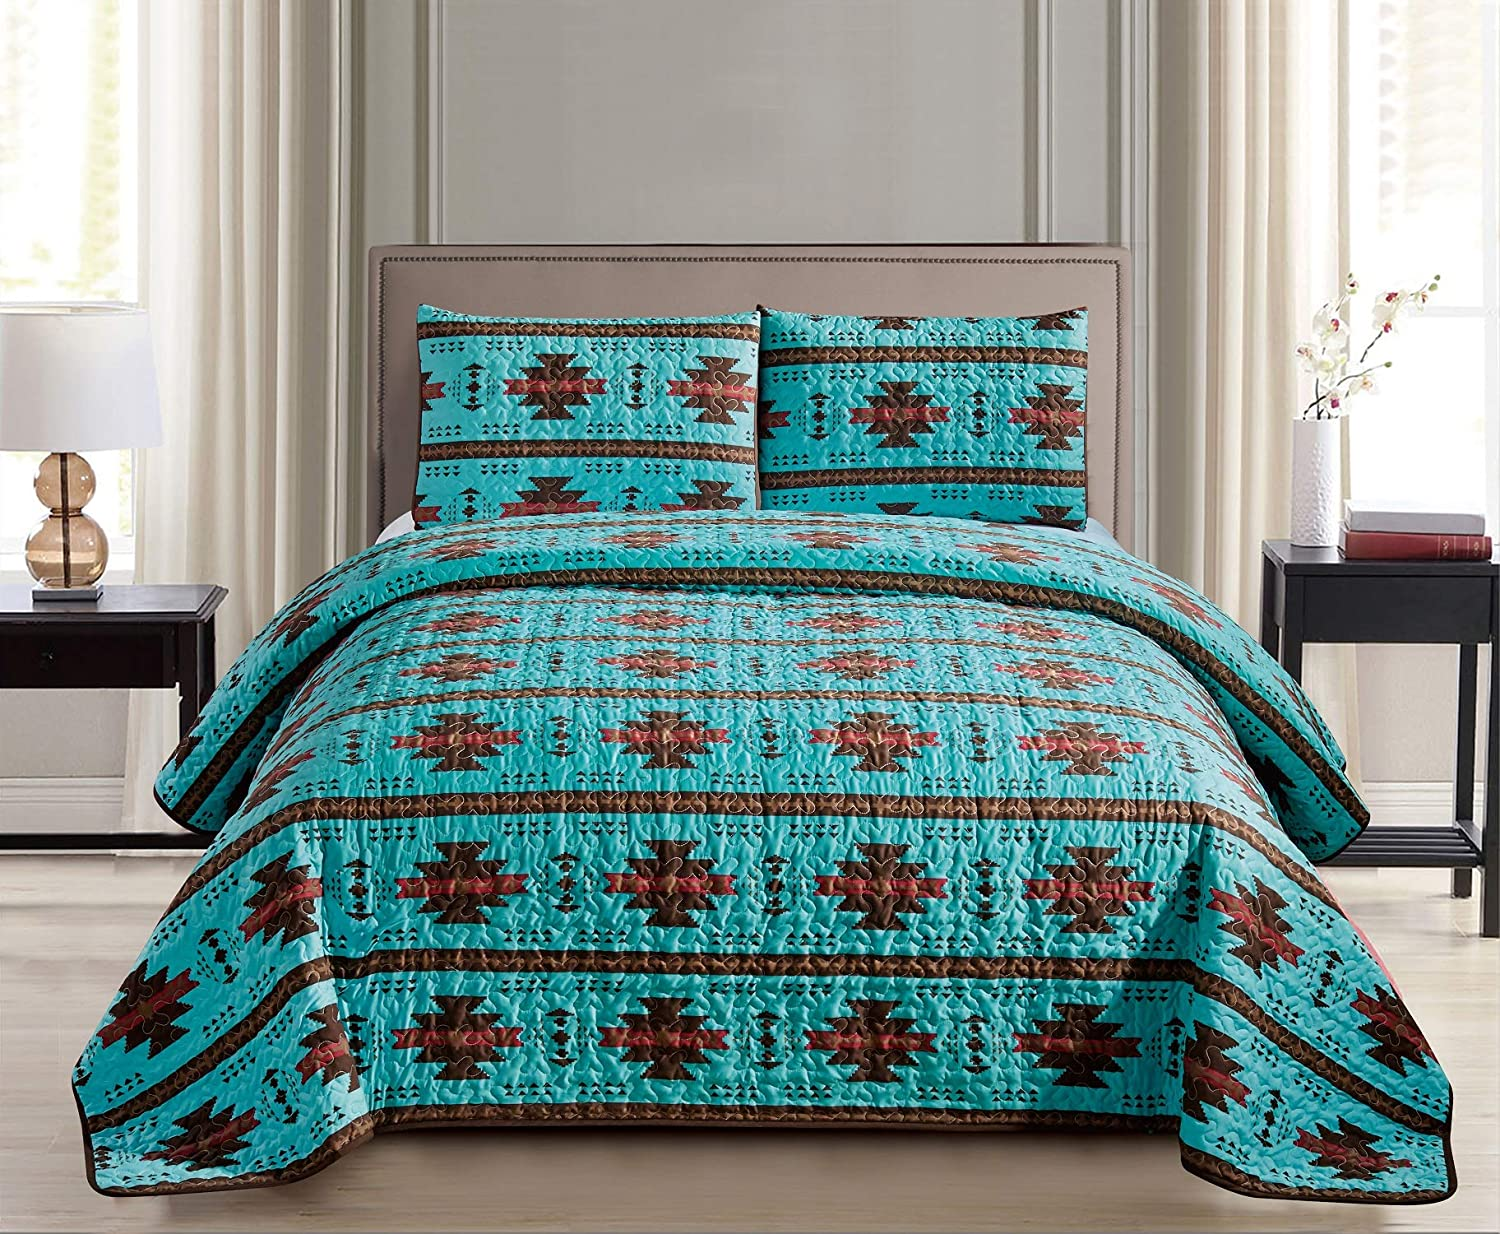 JABA Southwest Teal/Burgundy/Brown Print Bedspread 3 Piece Navajo/Native American Design Microfiber Cabin Lodge Quilt Set- Queen Size Southwestern Bedding (Queen)